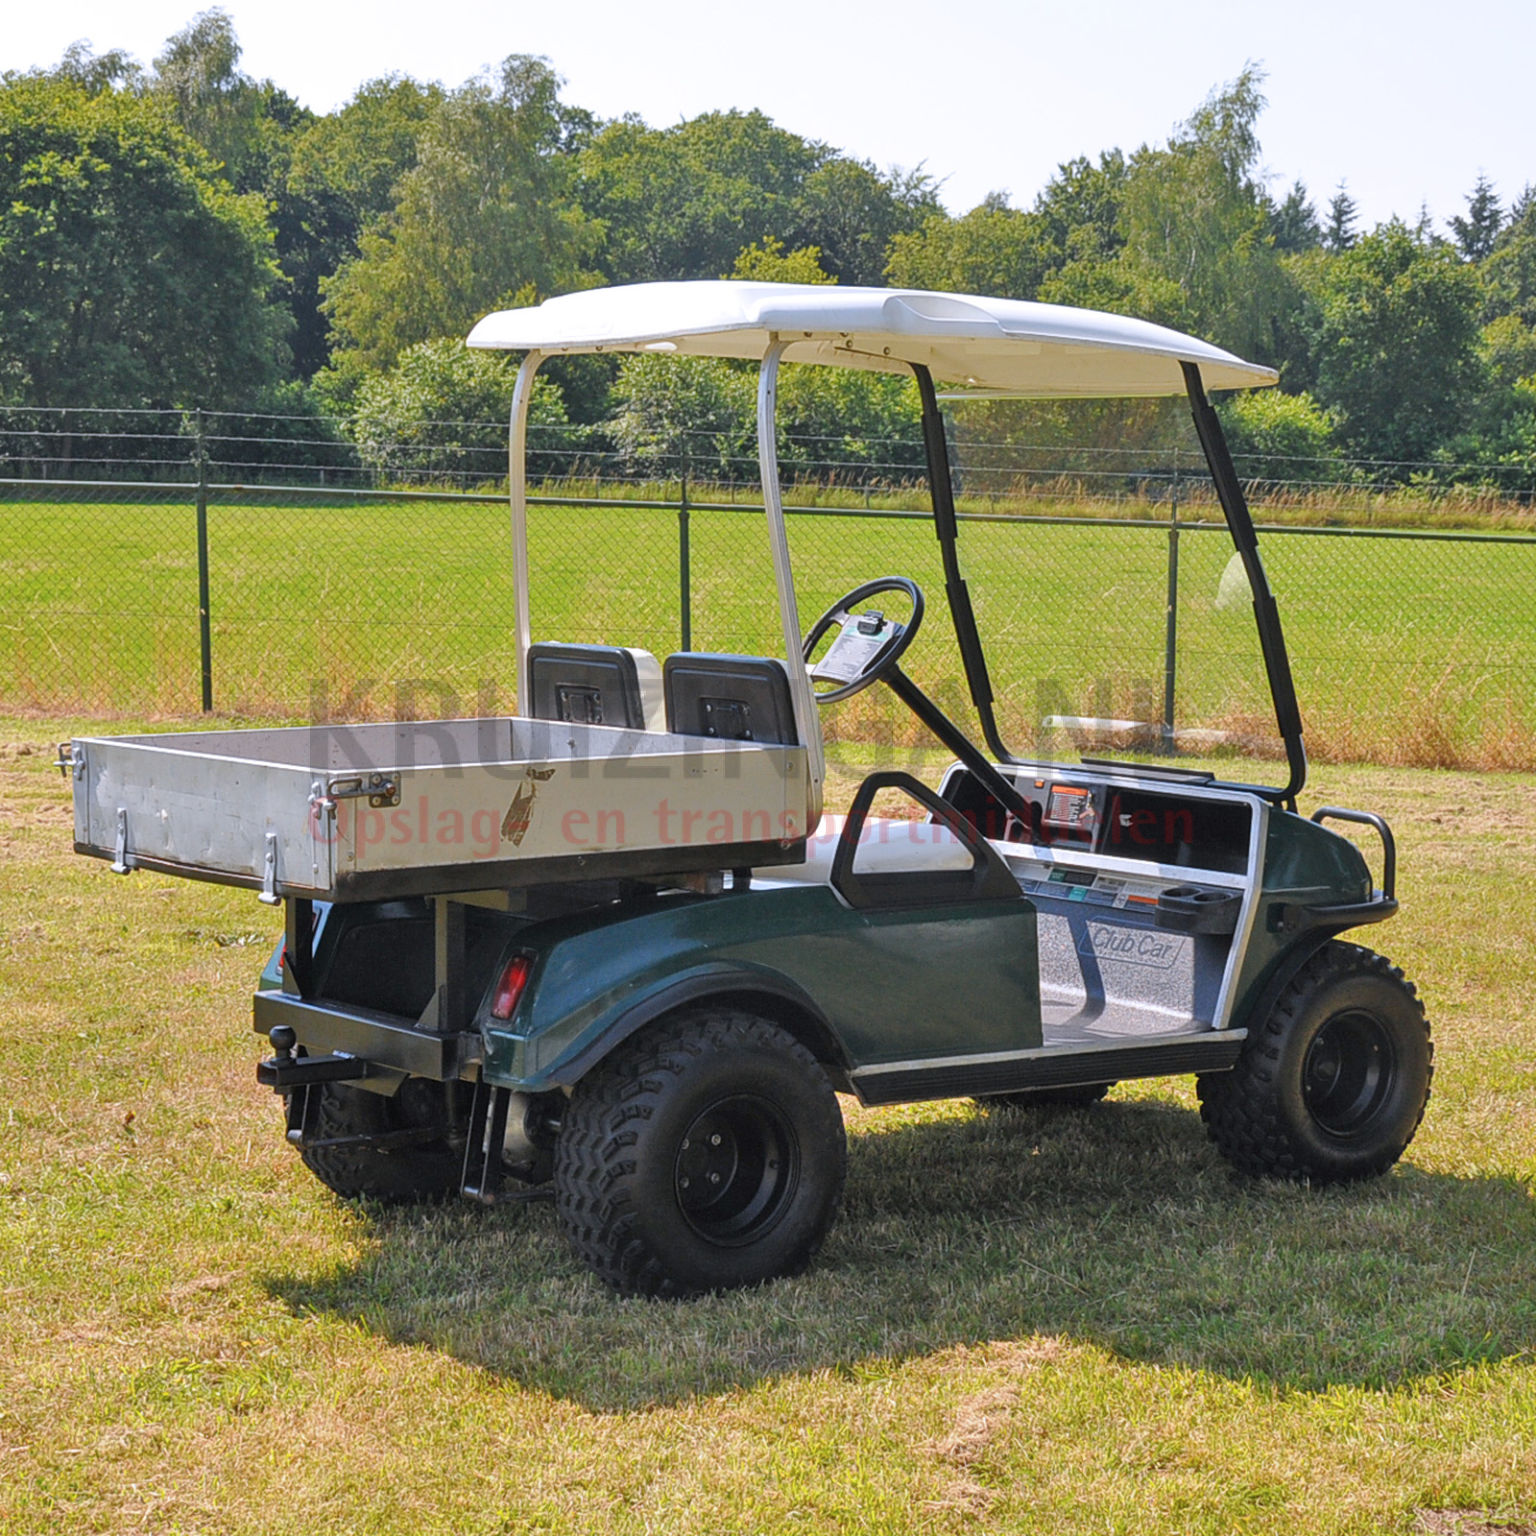 golf cart club car lynx pour 2 personnes lectrique. Black Bedroom Furniture Sets. Home Design Ideas